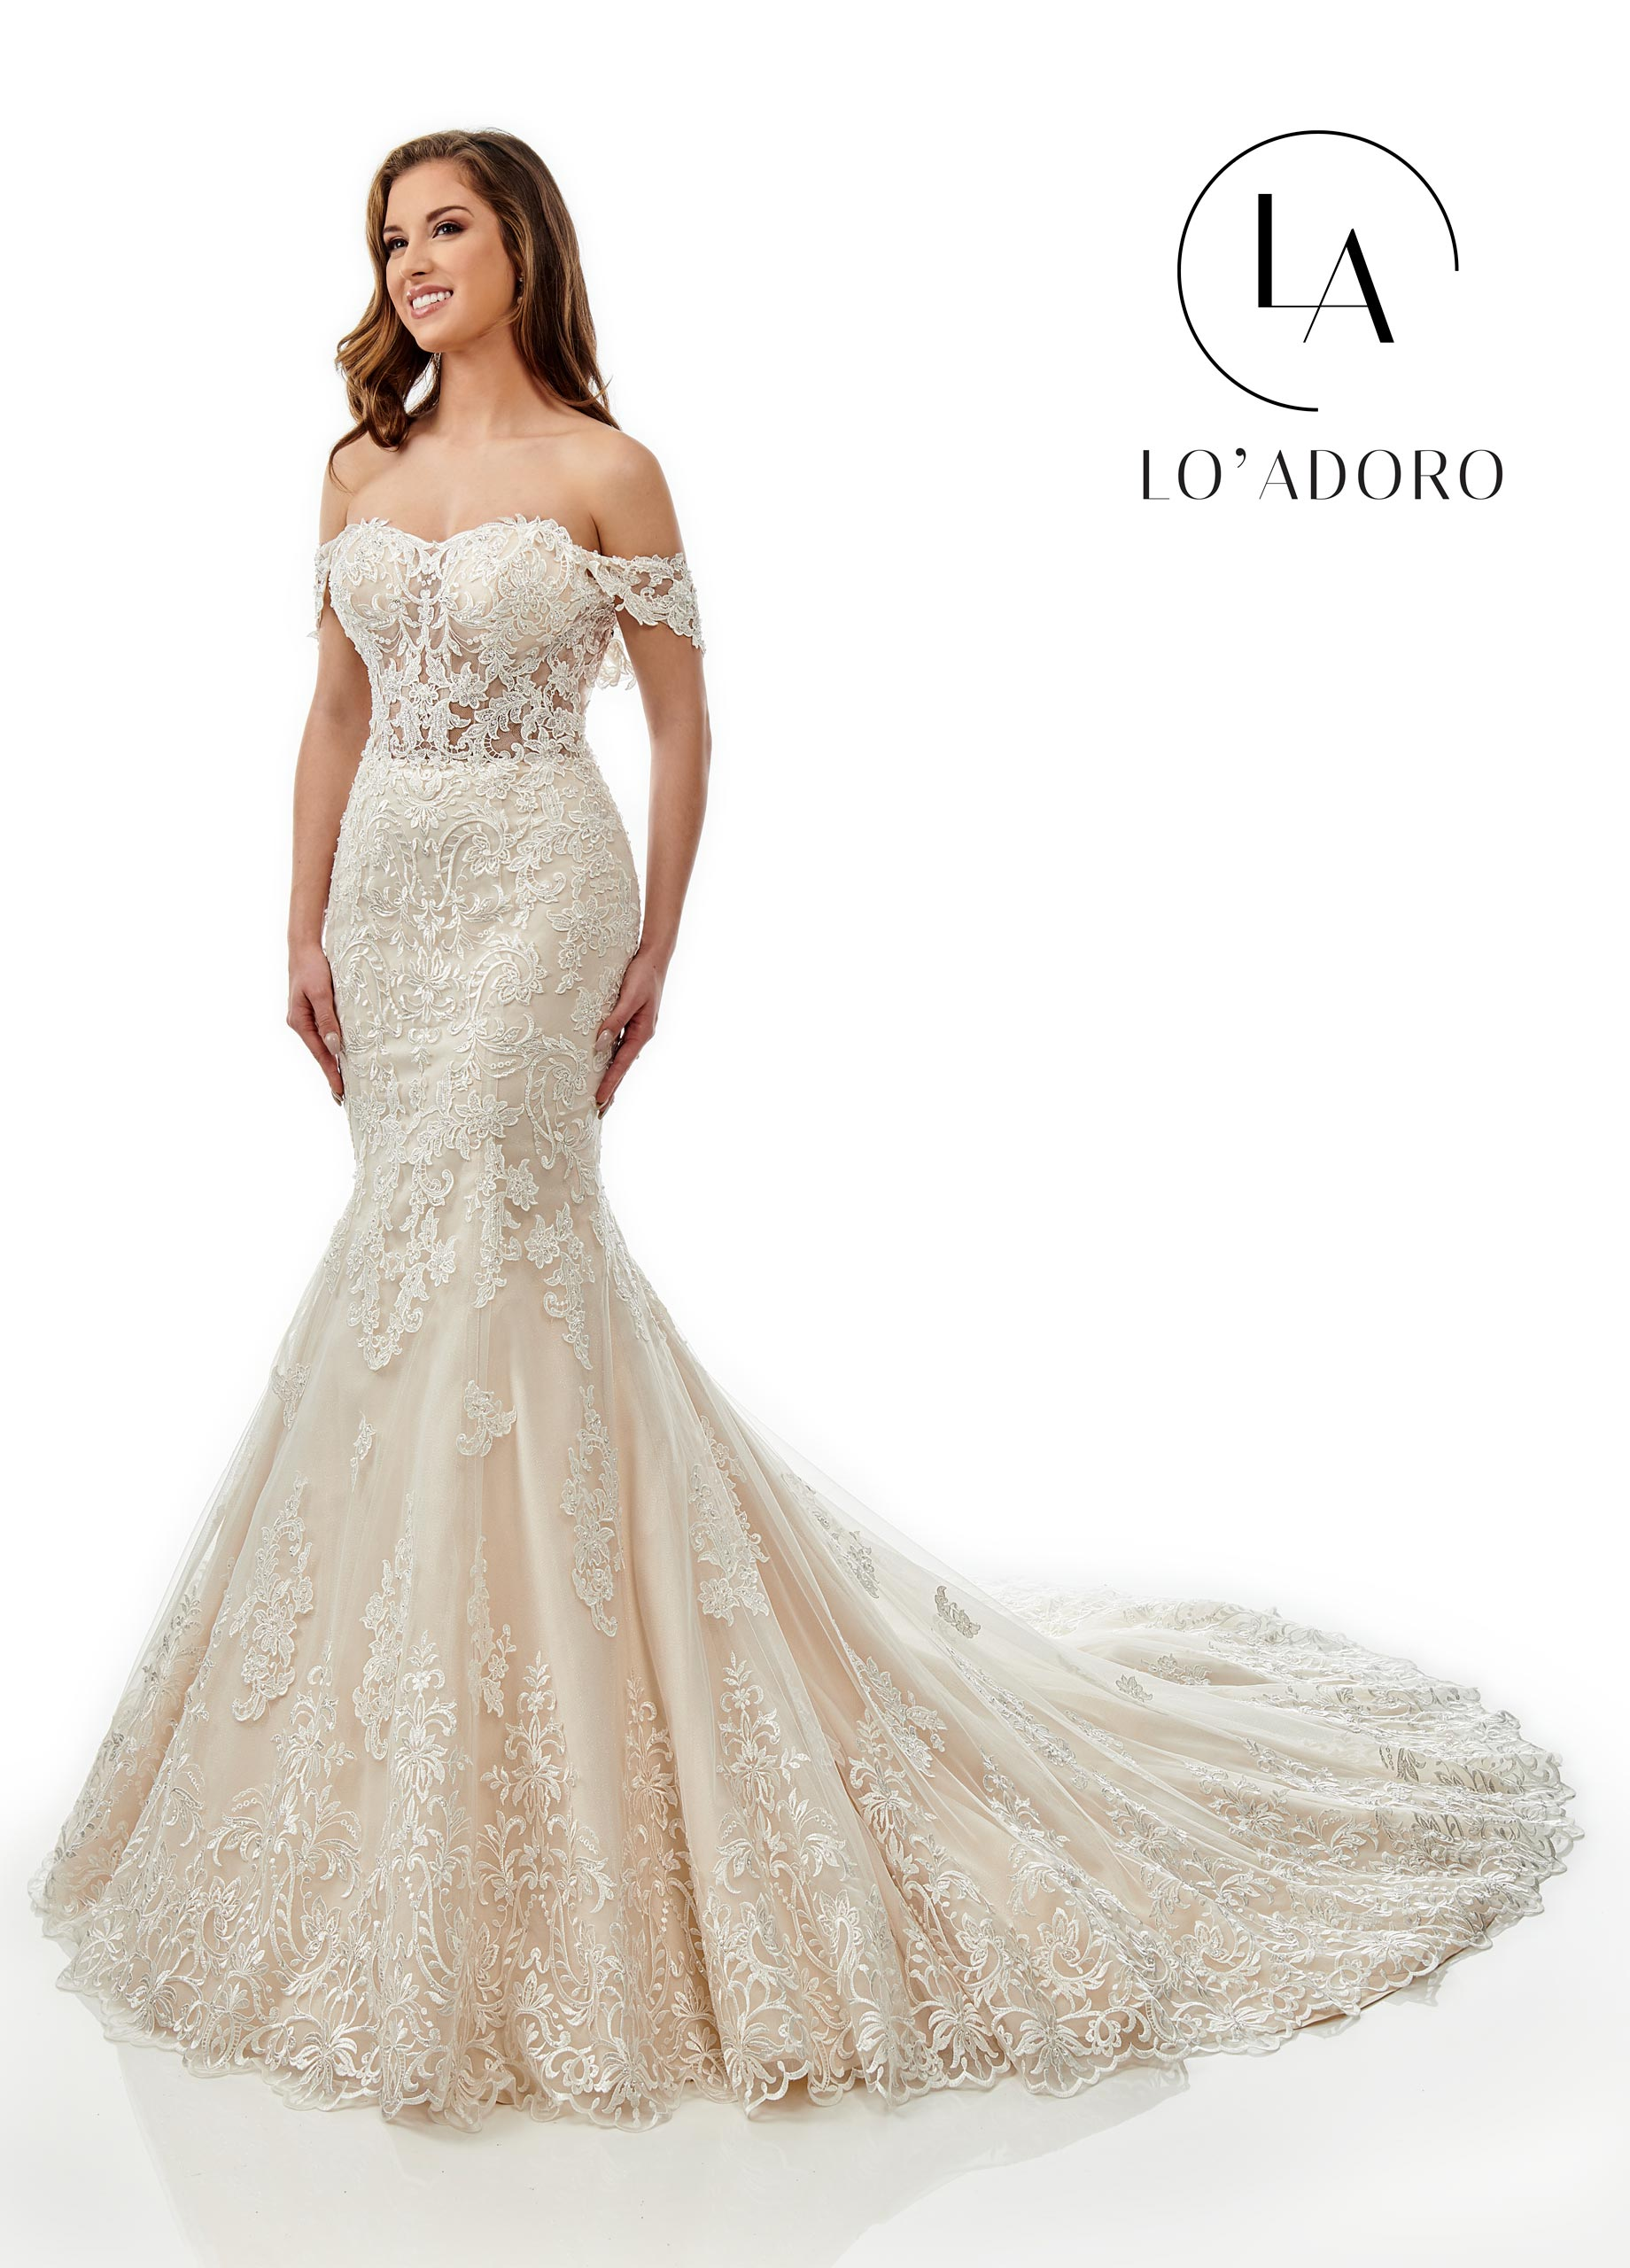 Sweetheart Mermaid Lo' Adoro Bridal in Champagne Color